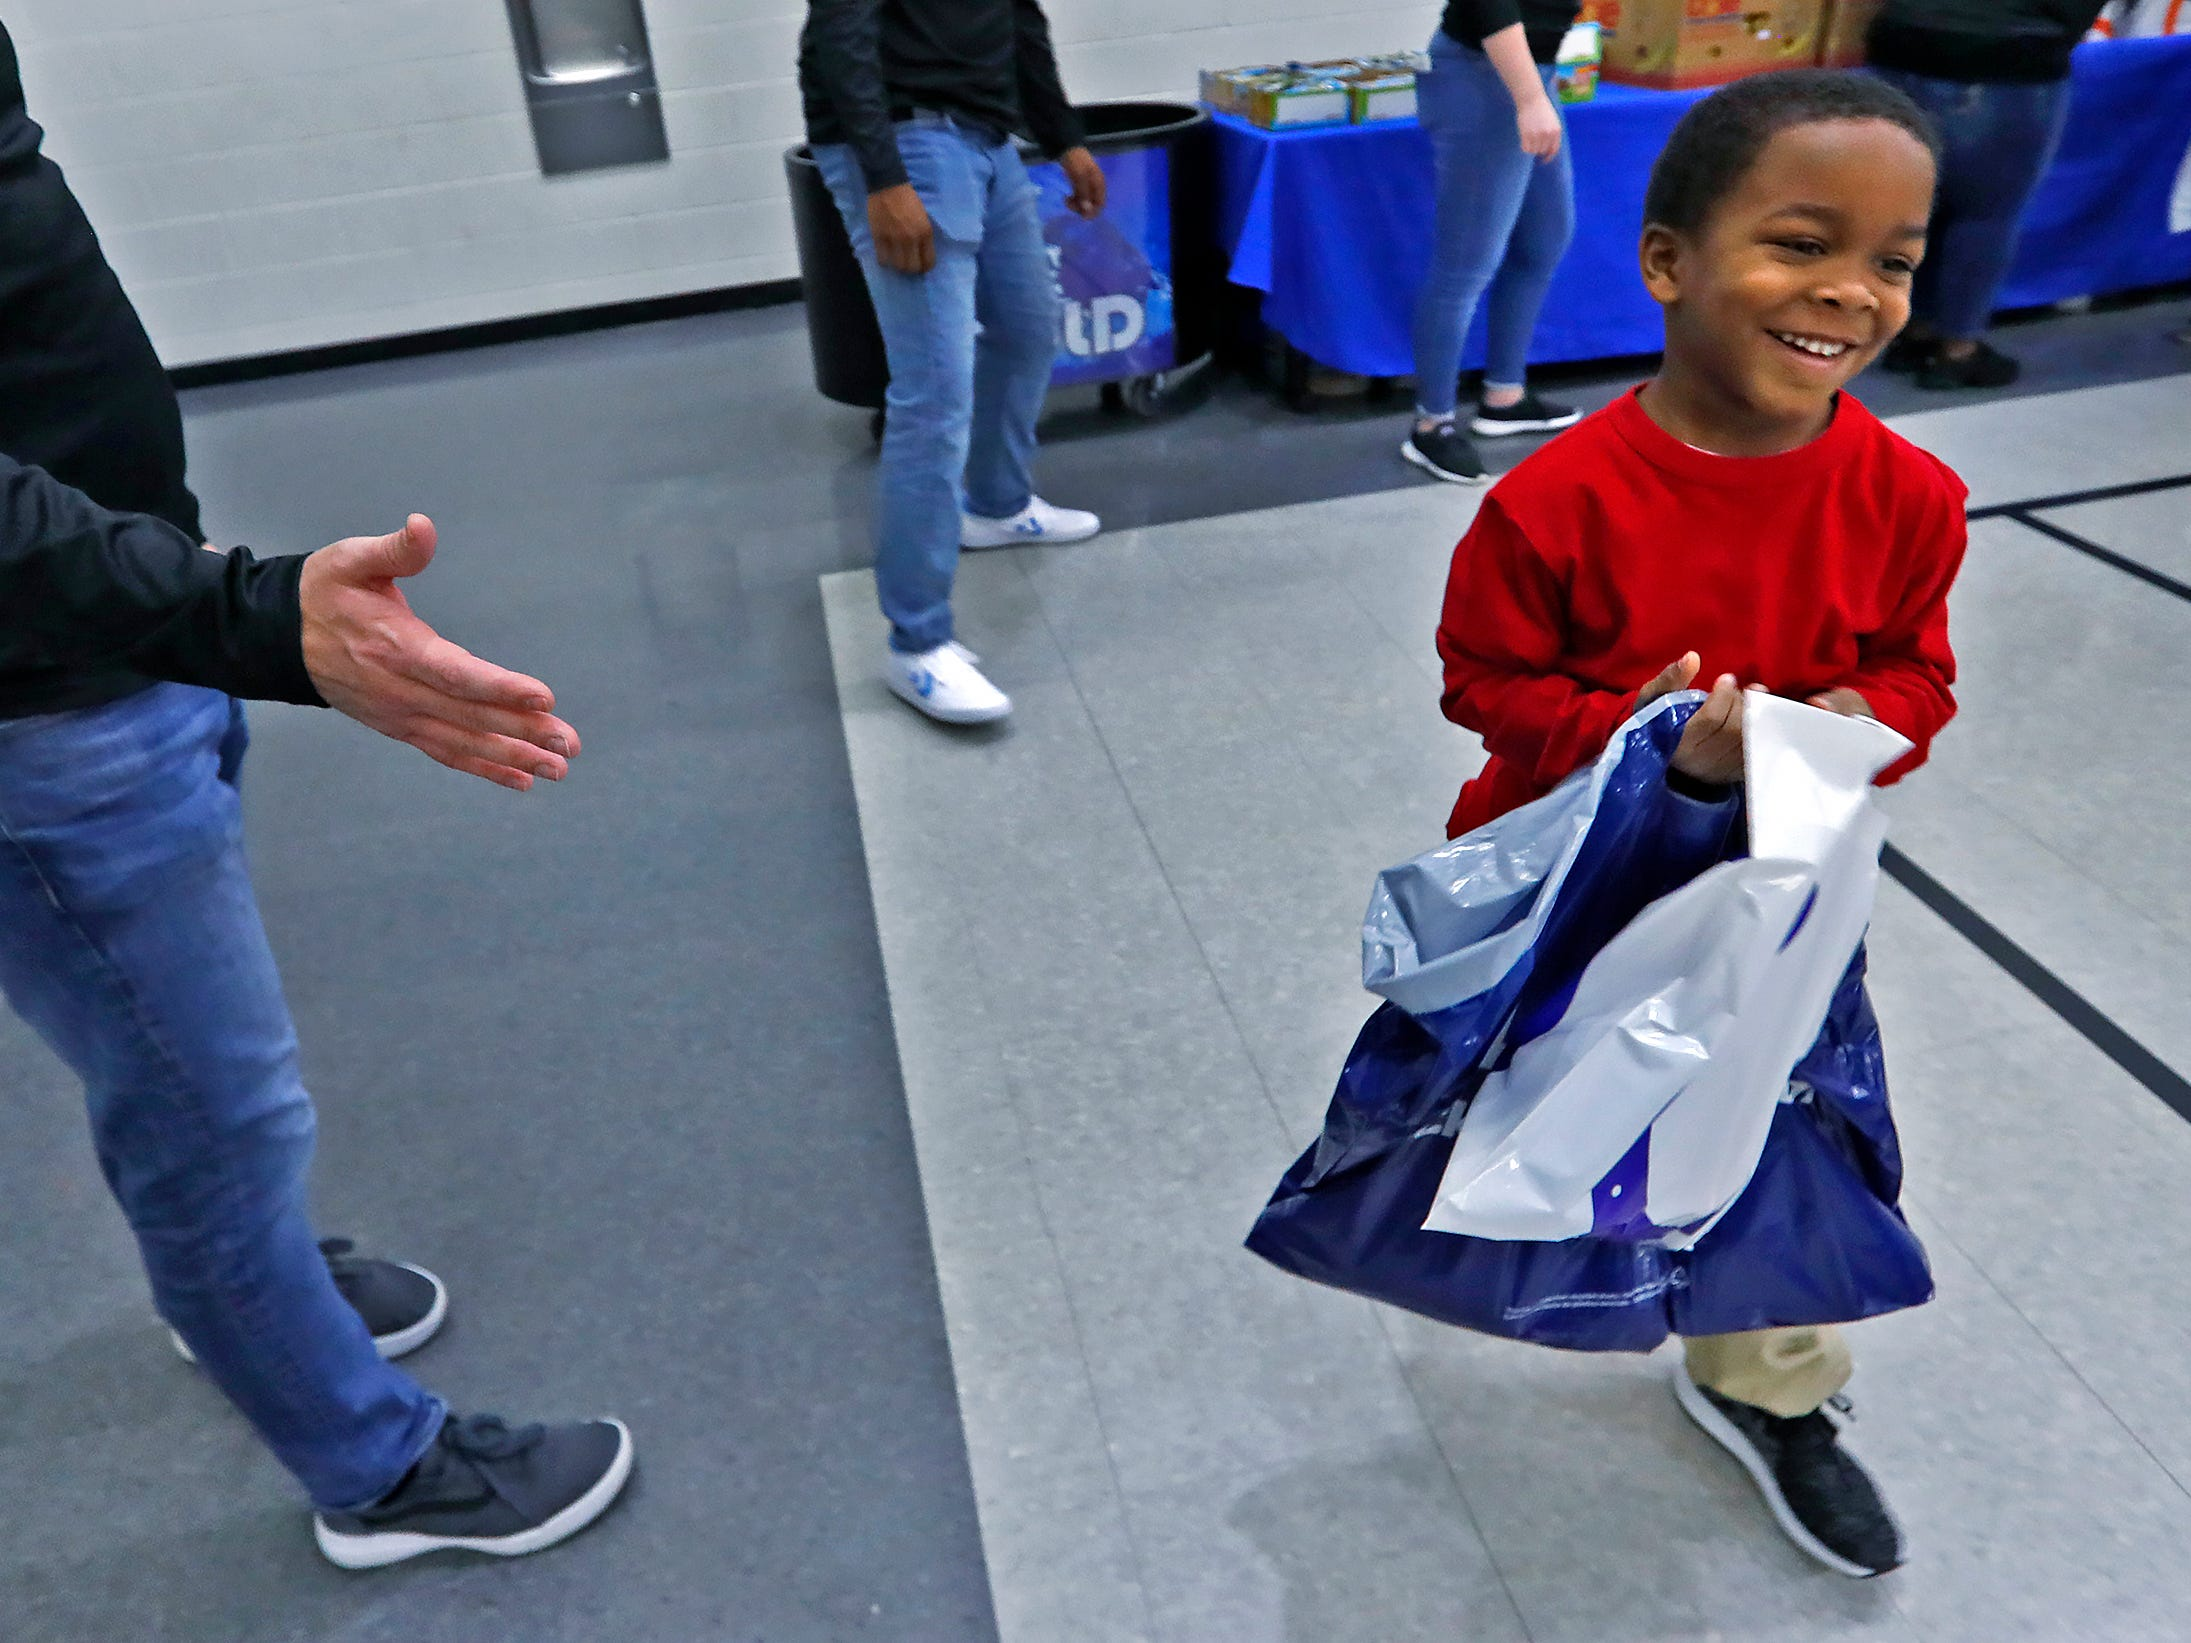 Damoni Lofton smiles after getting shoes, socks, a hat and other gifts at Brookside School 54, Monday, Dec. 3, 2018.  Colts players and staff joined as LIDS Sports and its parent company Genesco fit and gave new shoes, socks, hats, and snacks to students as part of the 13th annual Cold Feet, Warm Shoes event.